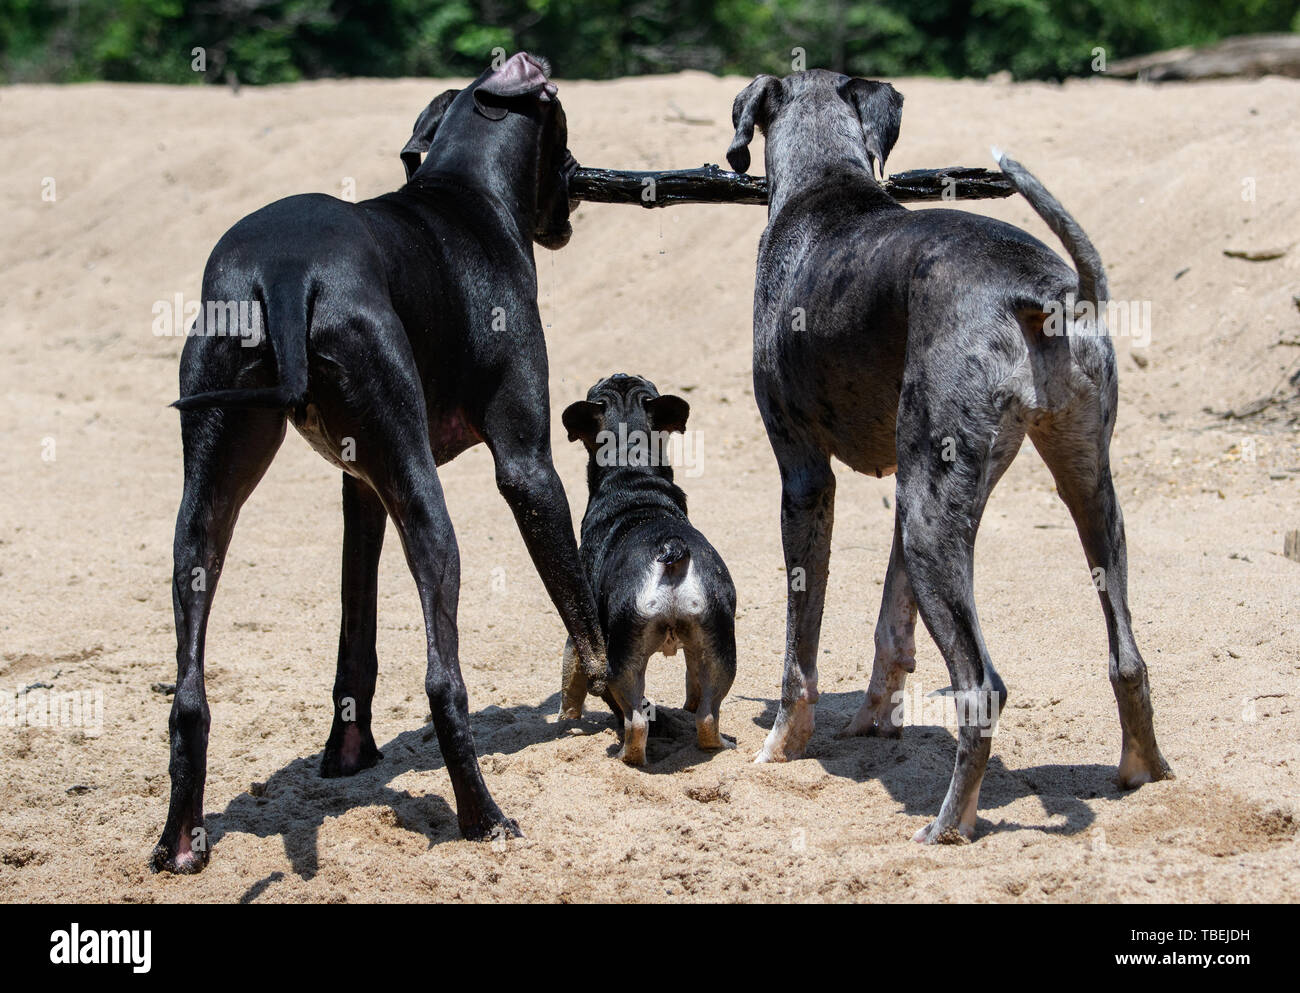 A French Bulldog trying to reach a stick that two Great Danes are playing with on the beach - Stock Image